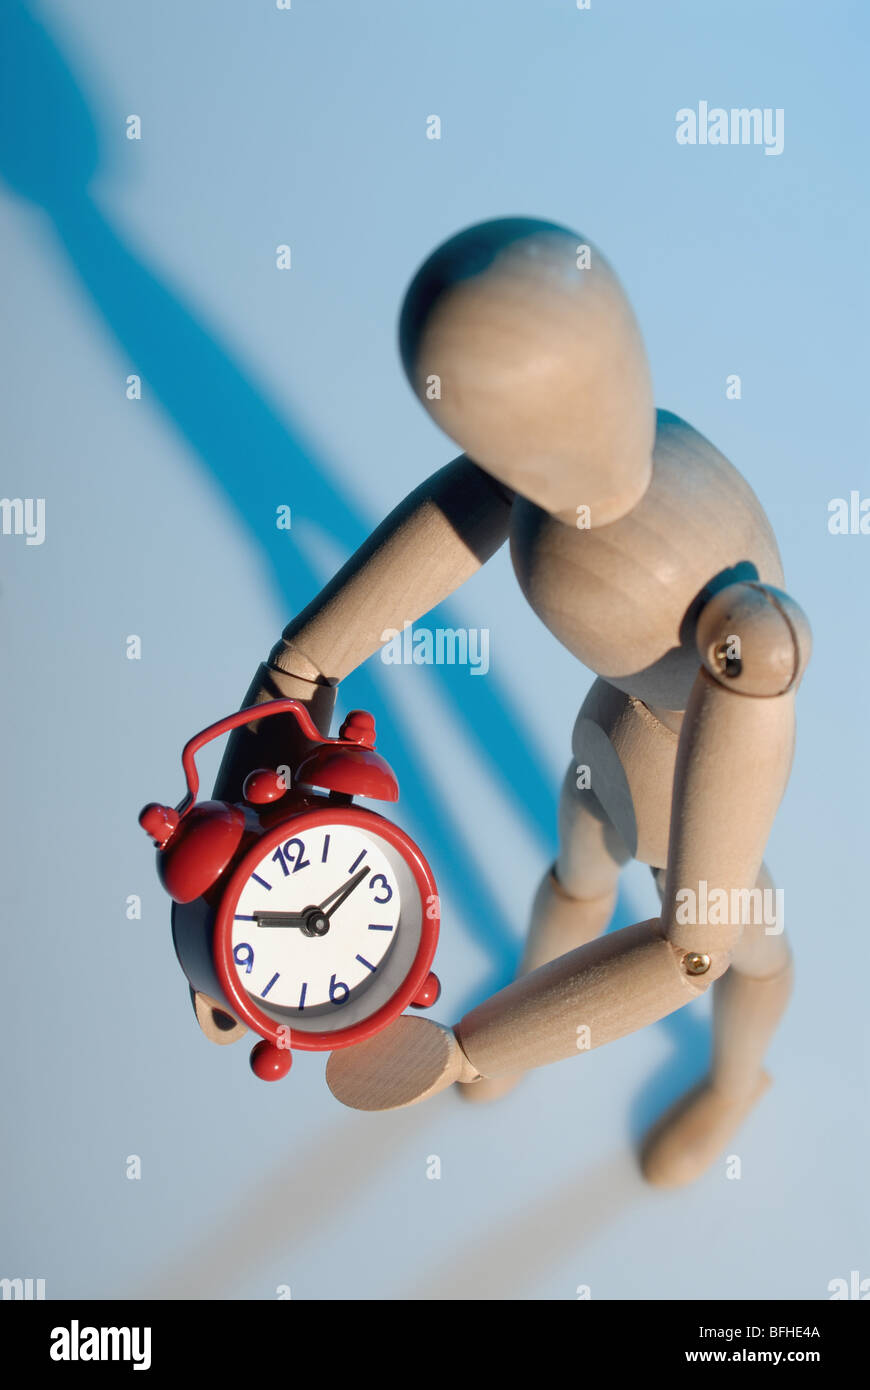 wooden model and red alarm clock,metaphor of stopping the time - Stock Image